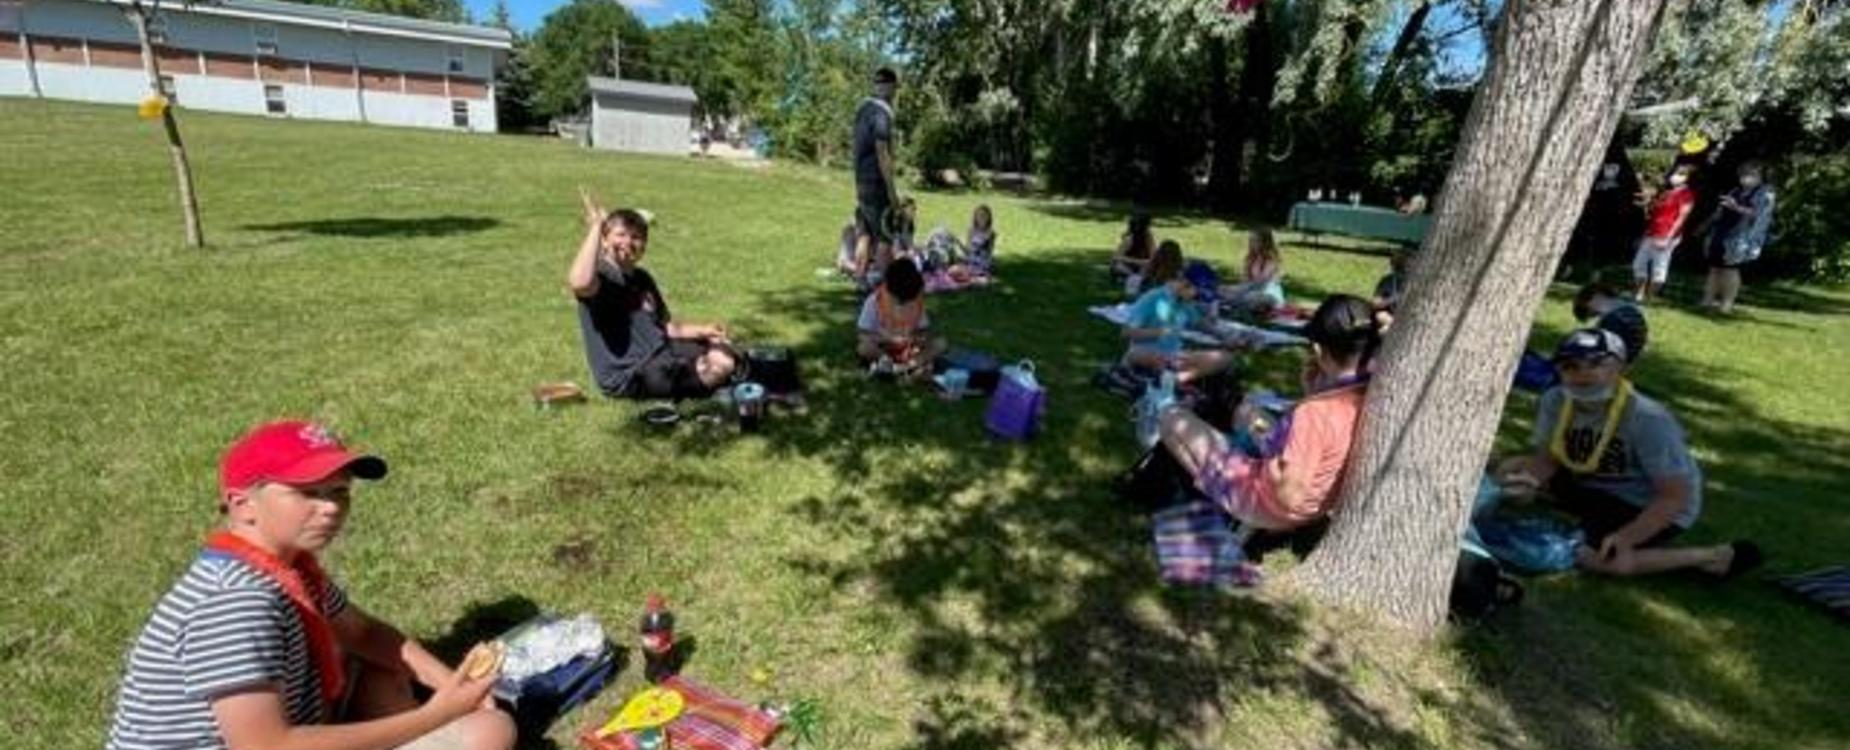 Grade 5 students having a farewell picnic lunch outside